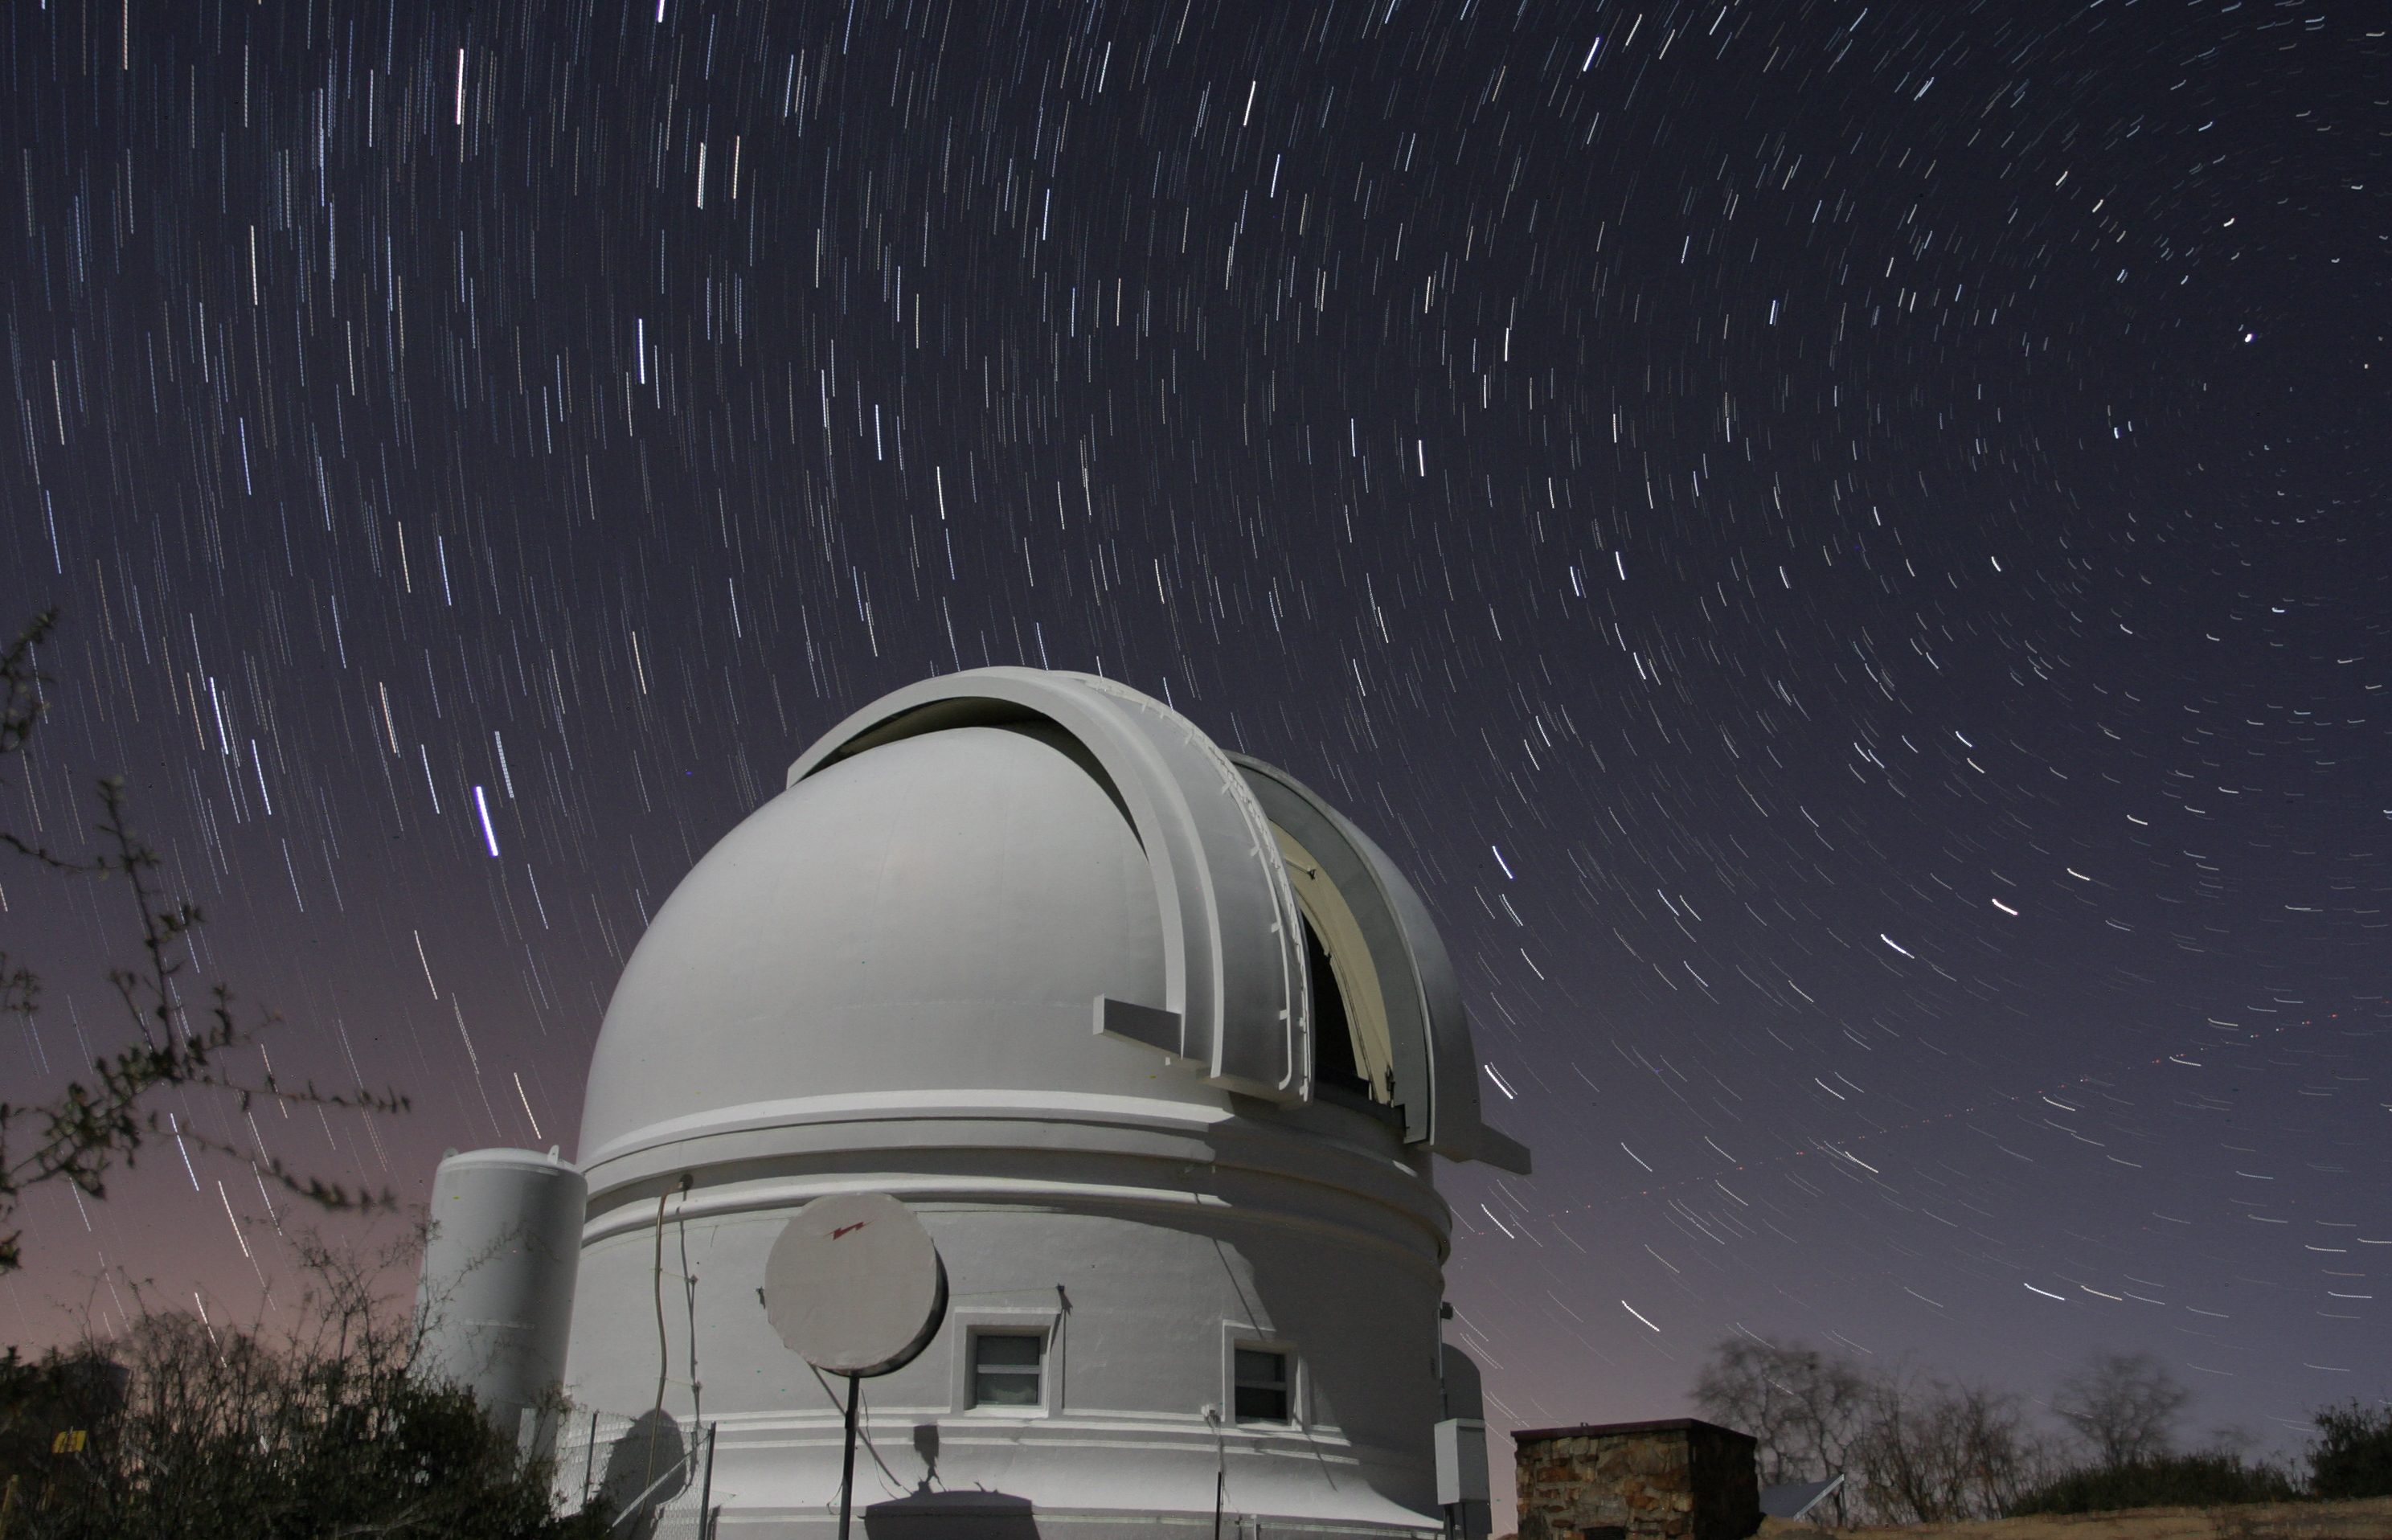 The Palomar Observatory photo by Scott Kardel